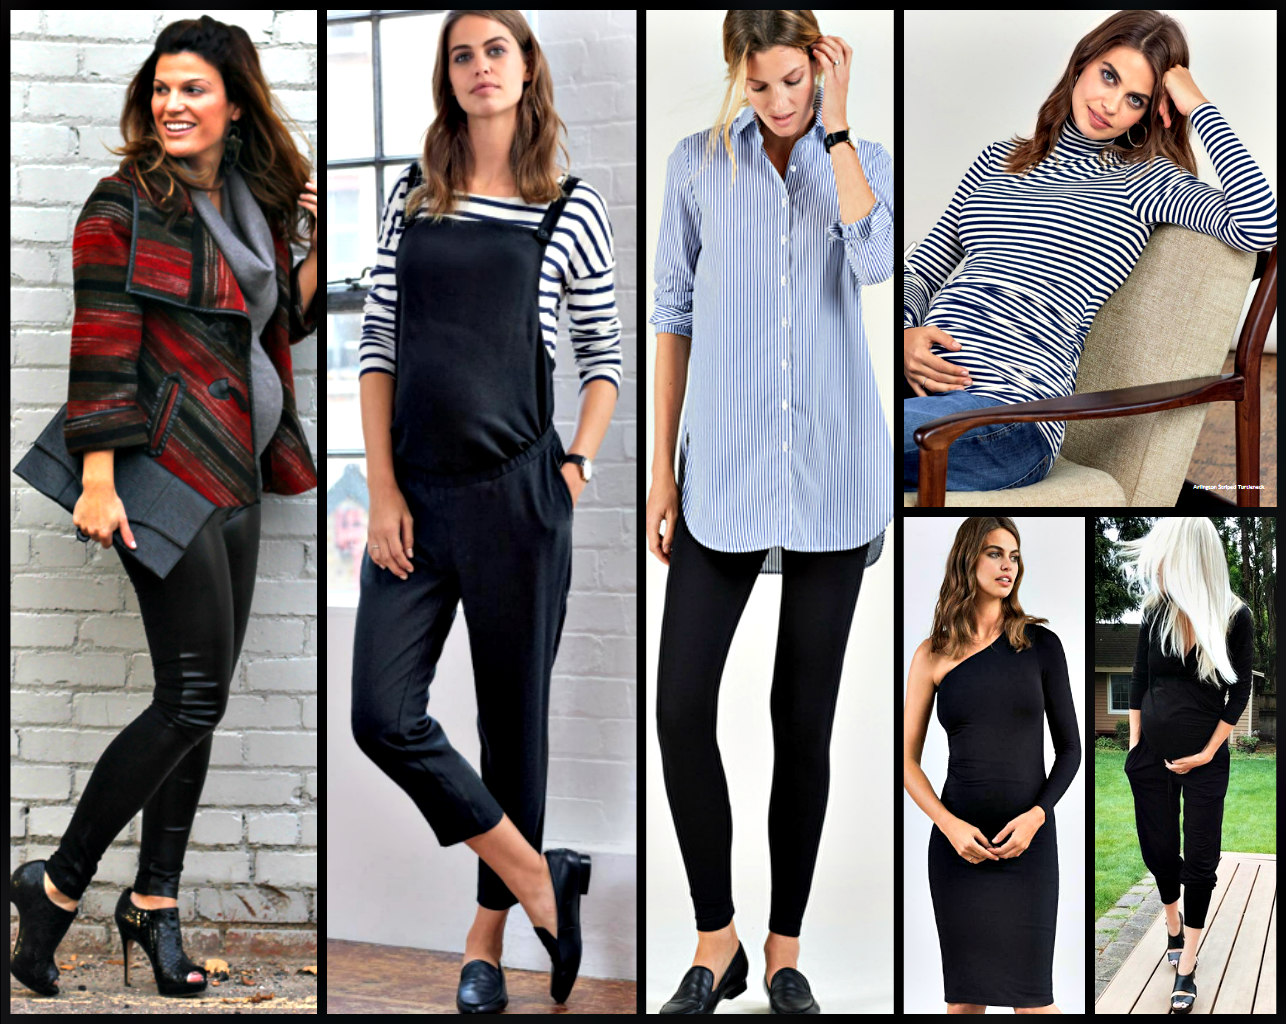 1357f1a7d5441 We are always on the lookout for cute ways to style your maternity wardrobe  and have always found great ideas from Fashion bloggers and Instagram.